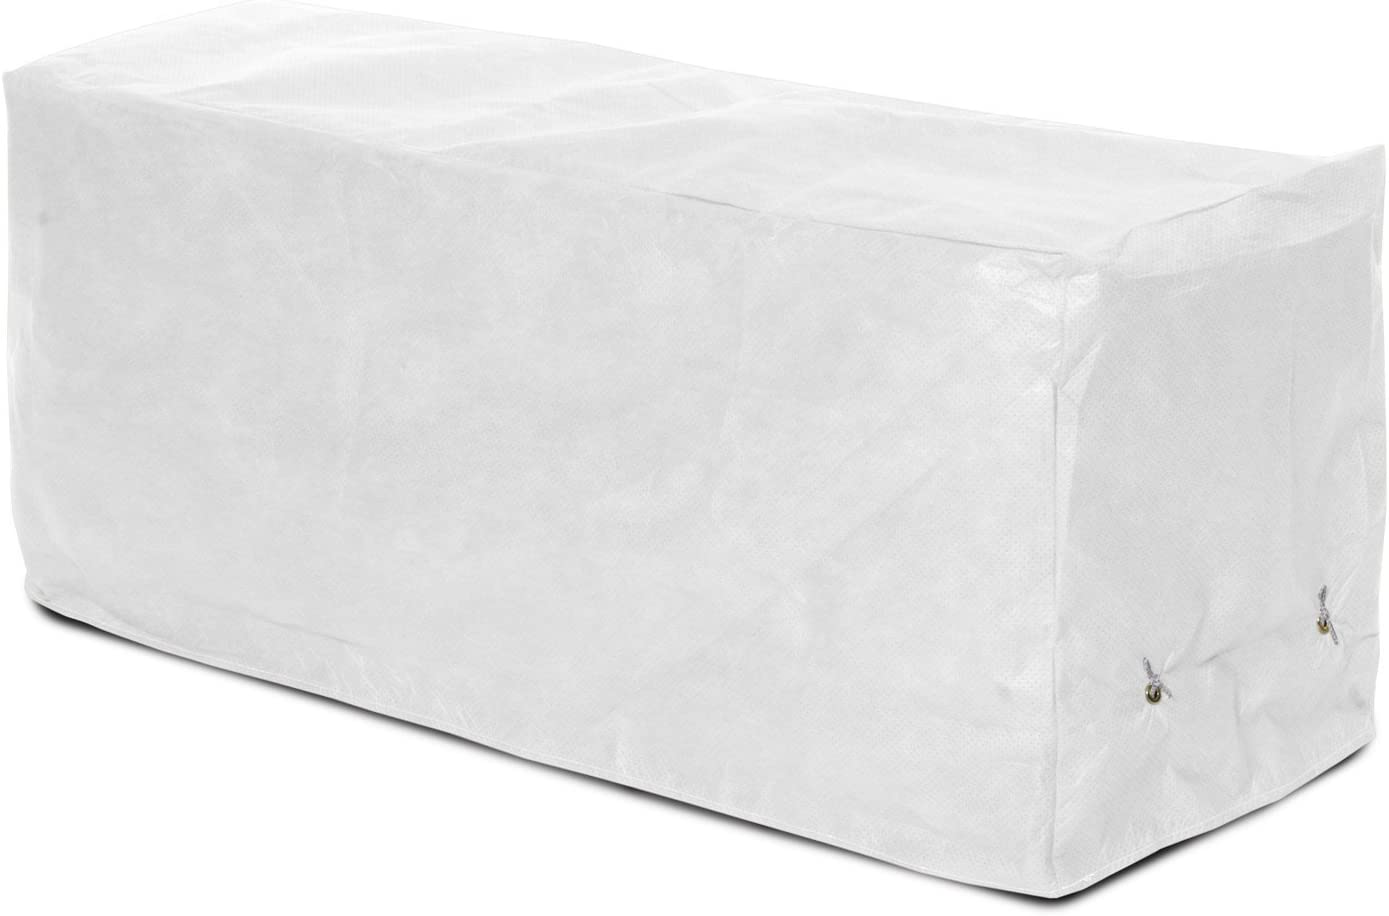 KoverRoos DuPont Tyvek 24212 4-Feet Garden Seat Cover, 51-Inch Width by 28-Inch Diameter by 18-Inch Height, White